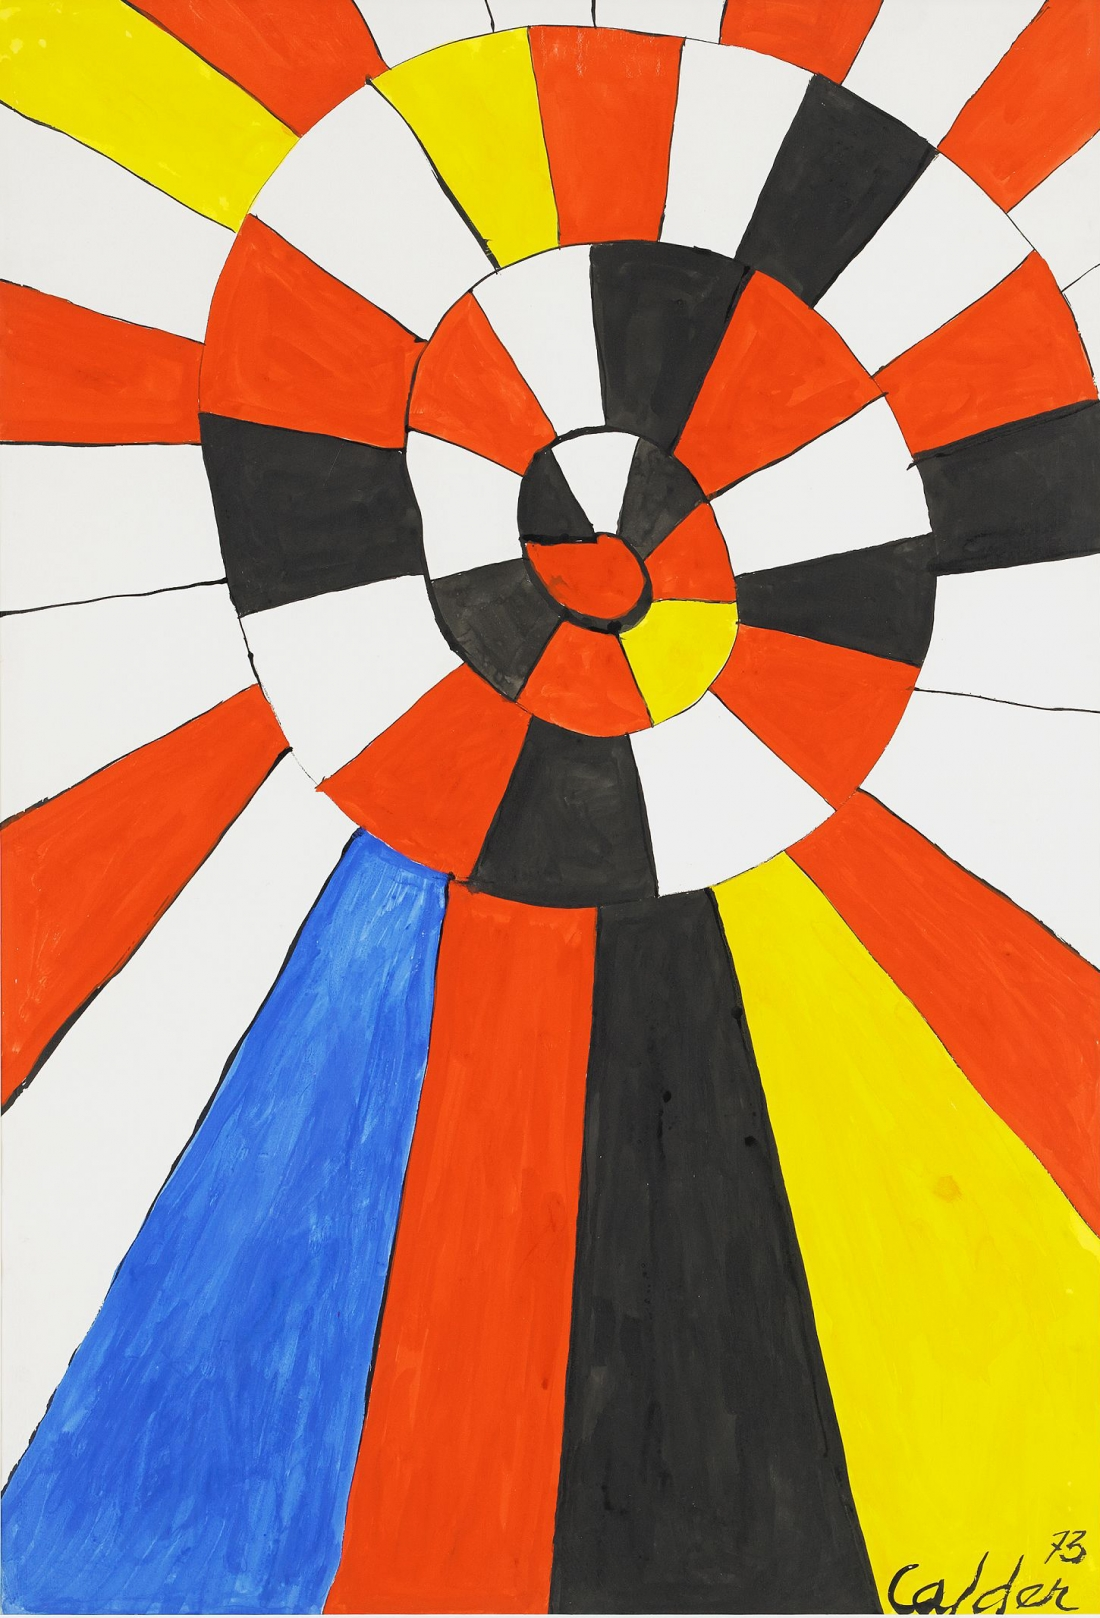 Gamble Yellow Sun, 1973 | Courtesy of Saatchi Gallery © Alexander Calder